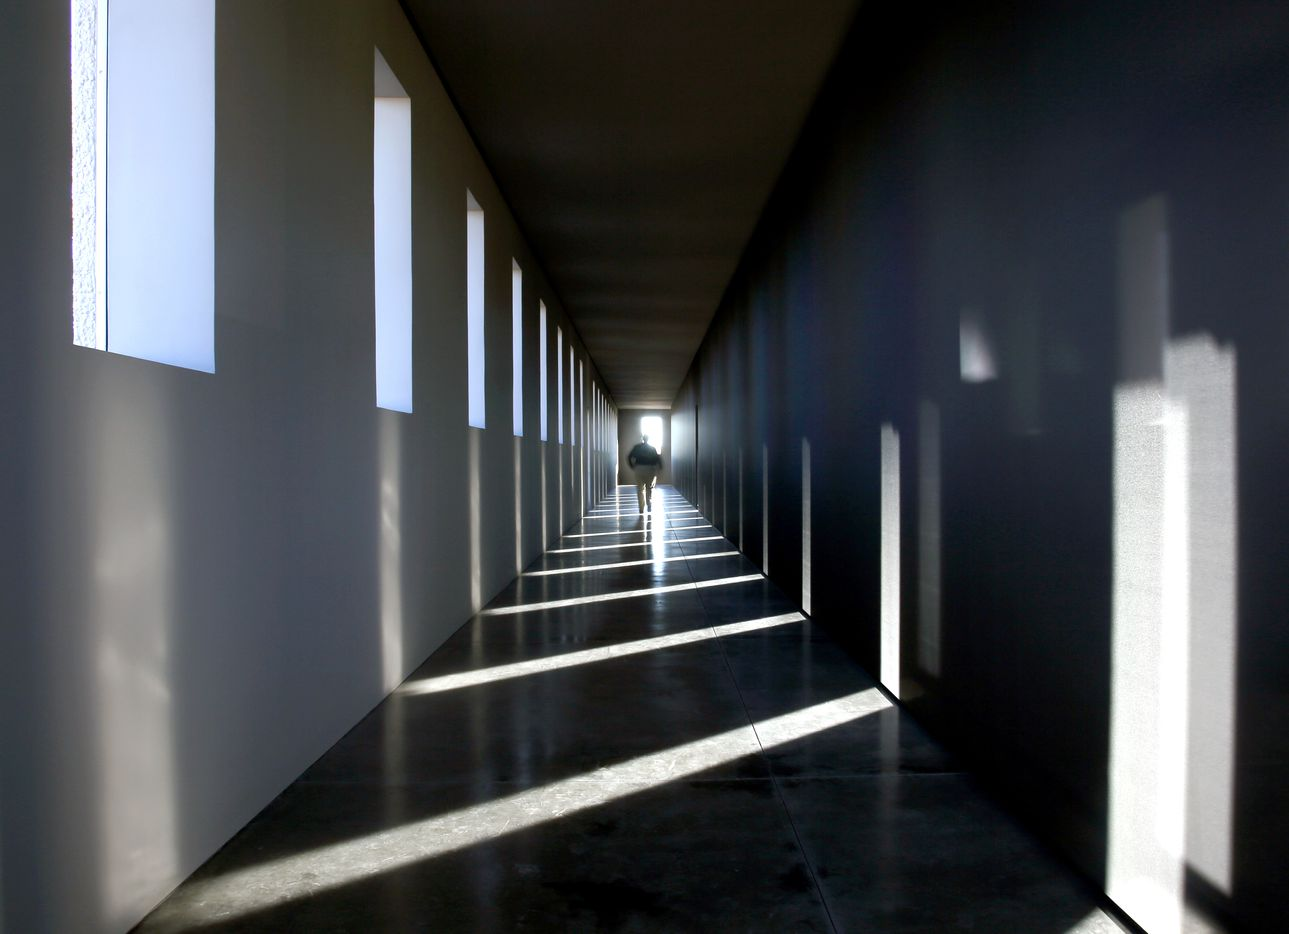 Light and shadow play in the Robert Irwin Untitled (dawn to dusk) 2016 permanent installation at the Chinati Foundation in Marfa. (Guy Reynolds/ Dallas Morning News, Courtesy of the Chinati Foundation, © Robert Irwin /  Artists Rights Society (ARS), New York)